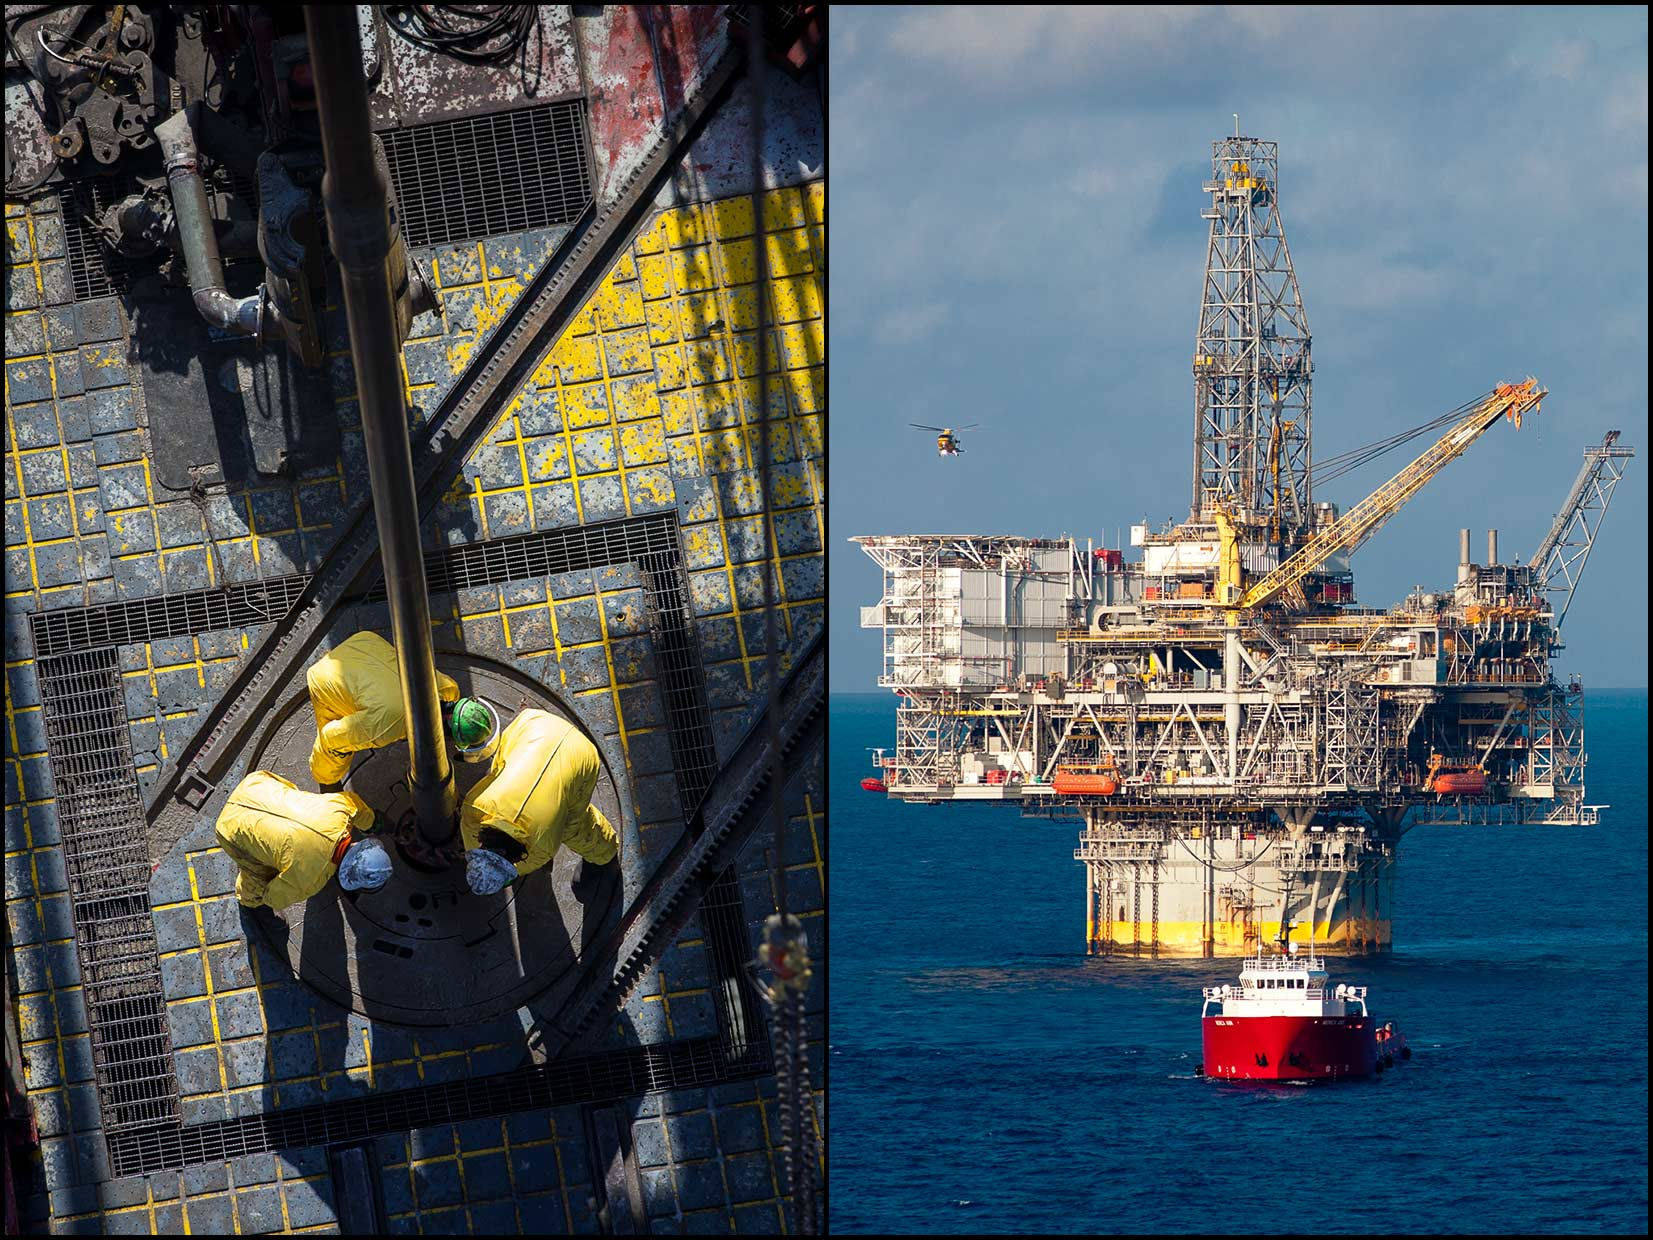 Roughnecks in yellow coveralls on rig floor as seen from derrick (L), A helicopter lands on the BP Mad Dog rig, with a support vessel in foreground (R).